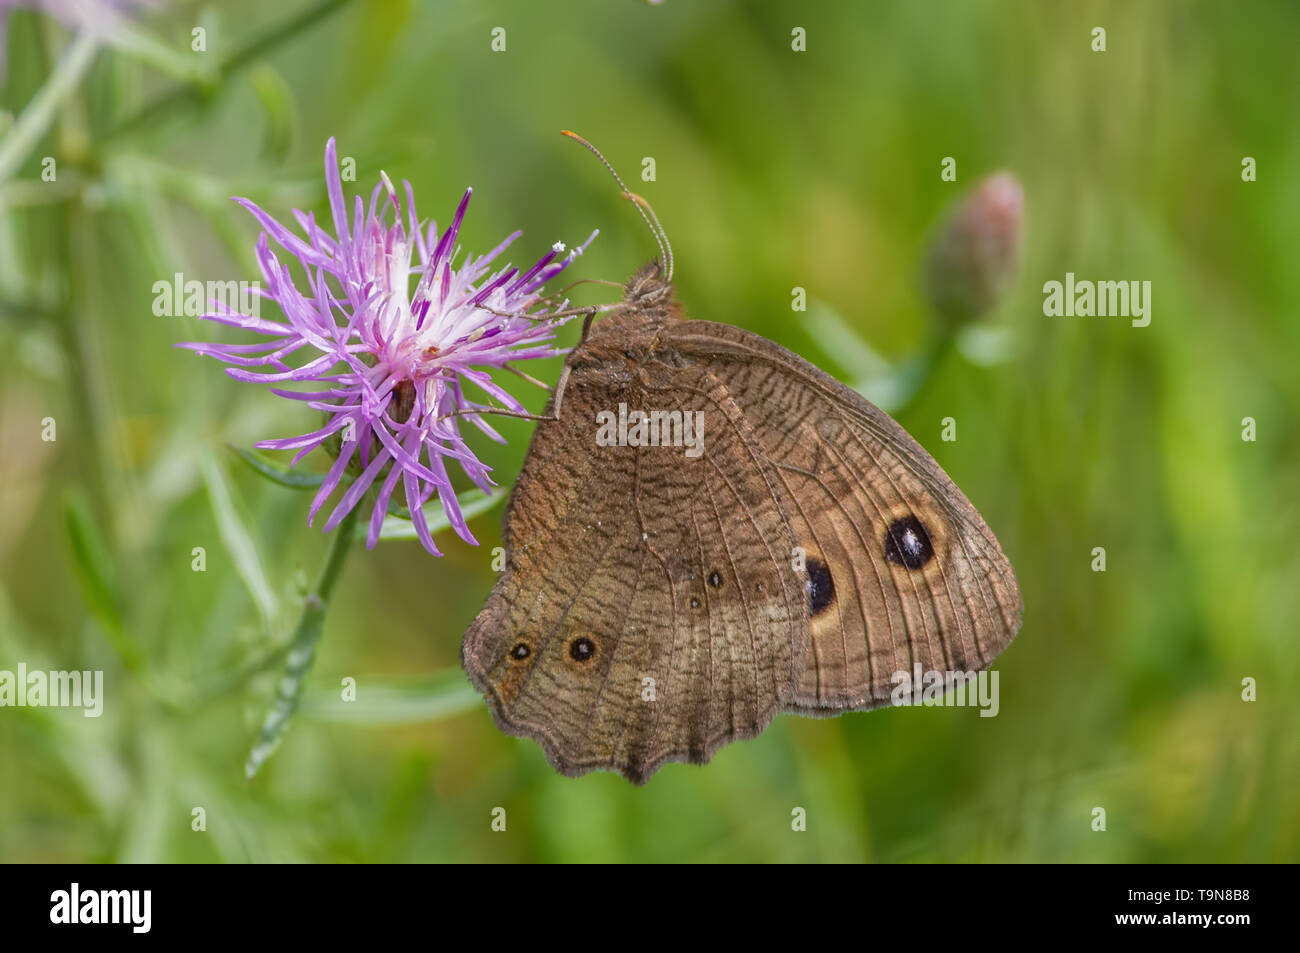 Common wood-nymph butterfly on purple wildflower in the grasslands of the Crex Meadows Wildlife Area in Northern Wisconsin - Stock Image